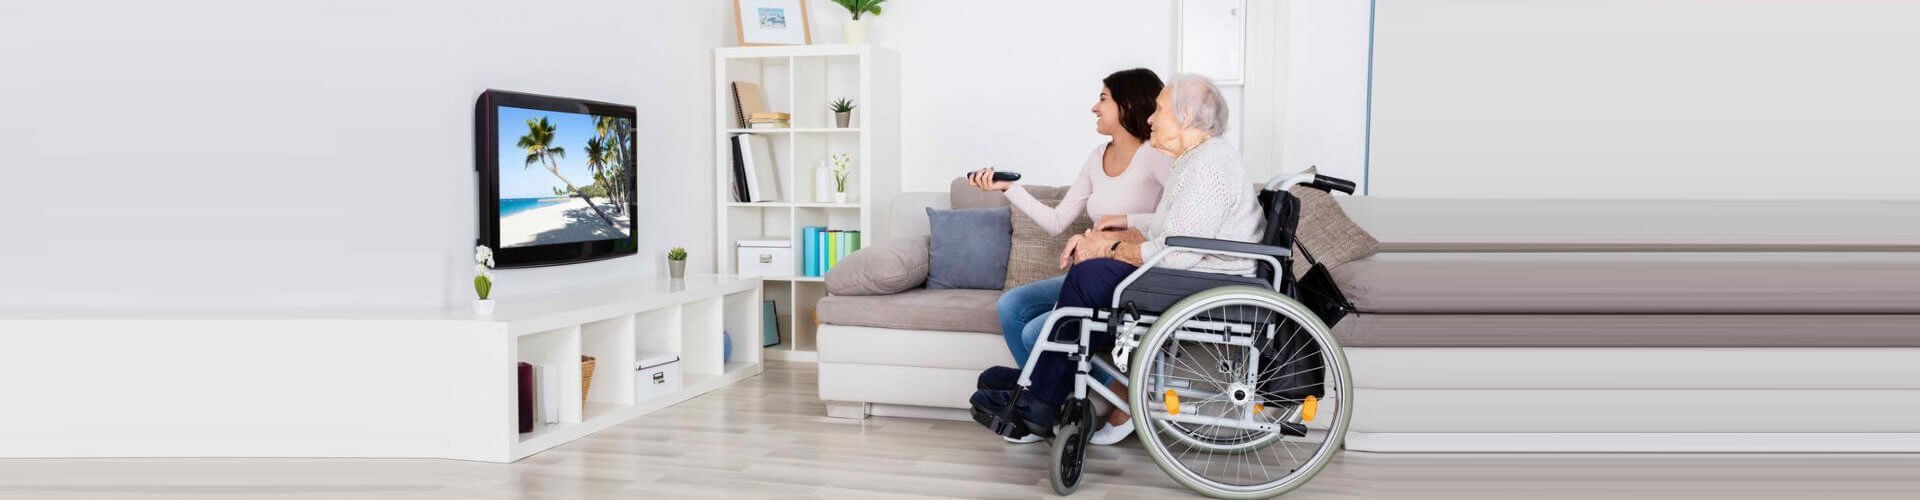 senior woman on wheelchair and caregiver watching television